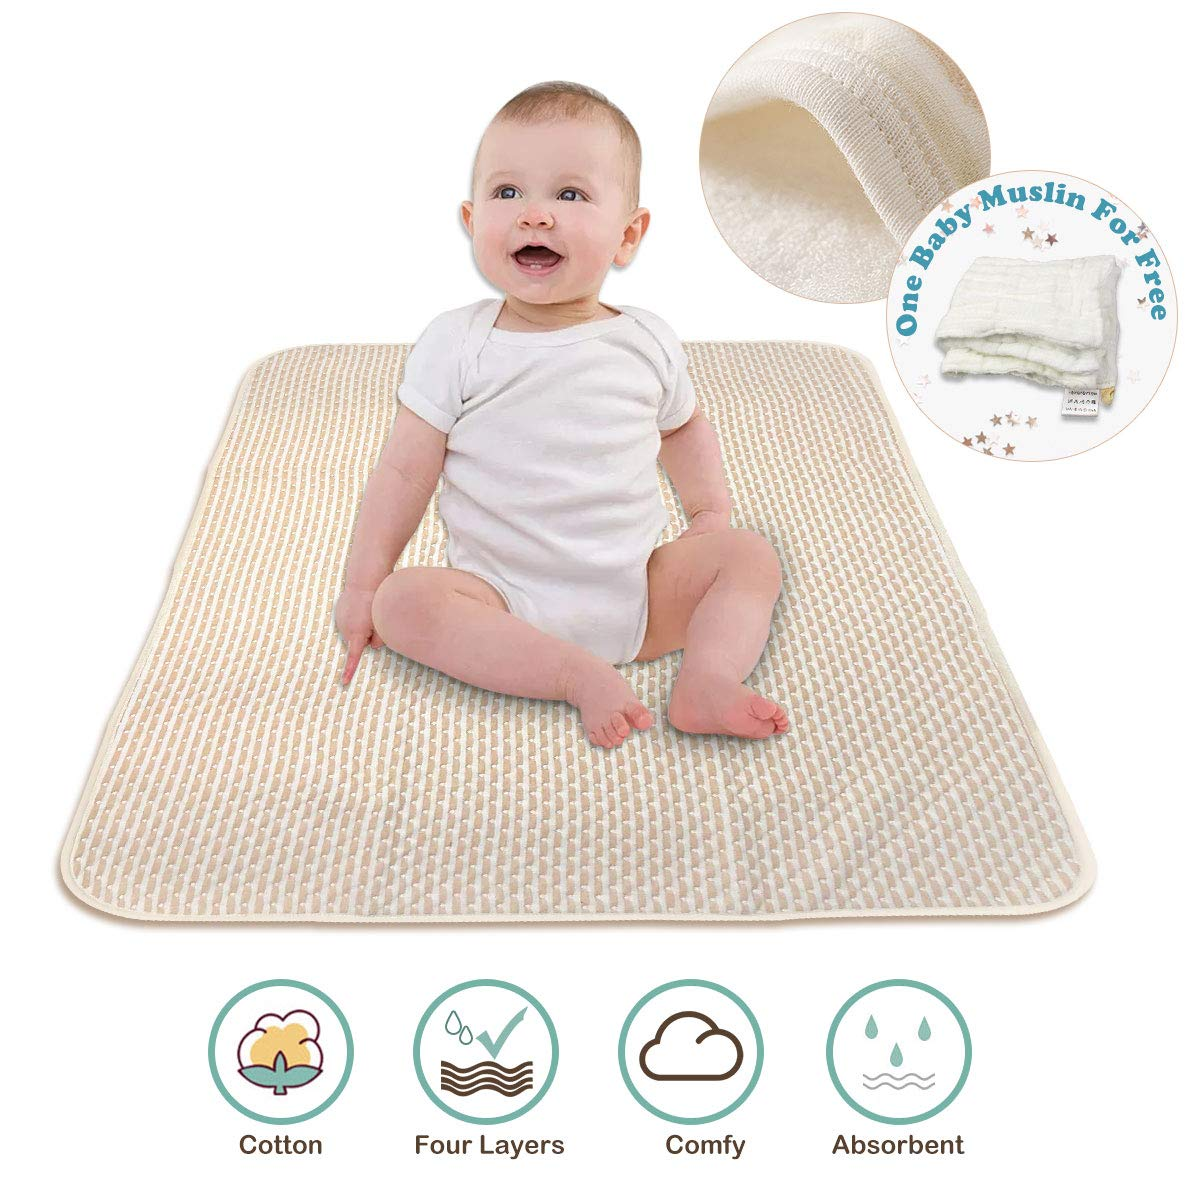 Waterproof Bed Pad - Baby Waterproof Sheet, Incontinence Mattress Protector for Children Adults, Soft Breathable Organic Colored Cotton Pets Pad - 1PCS (Stripe Beige) Kordear